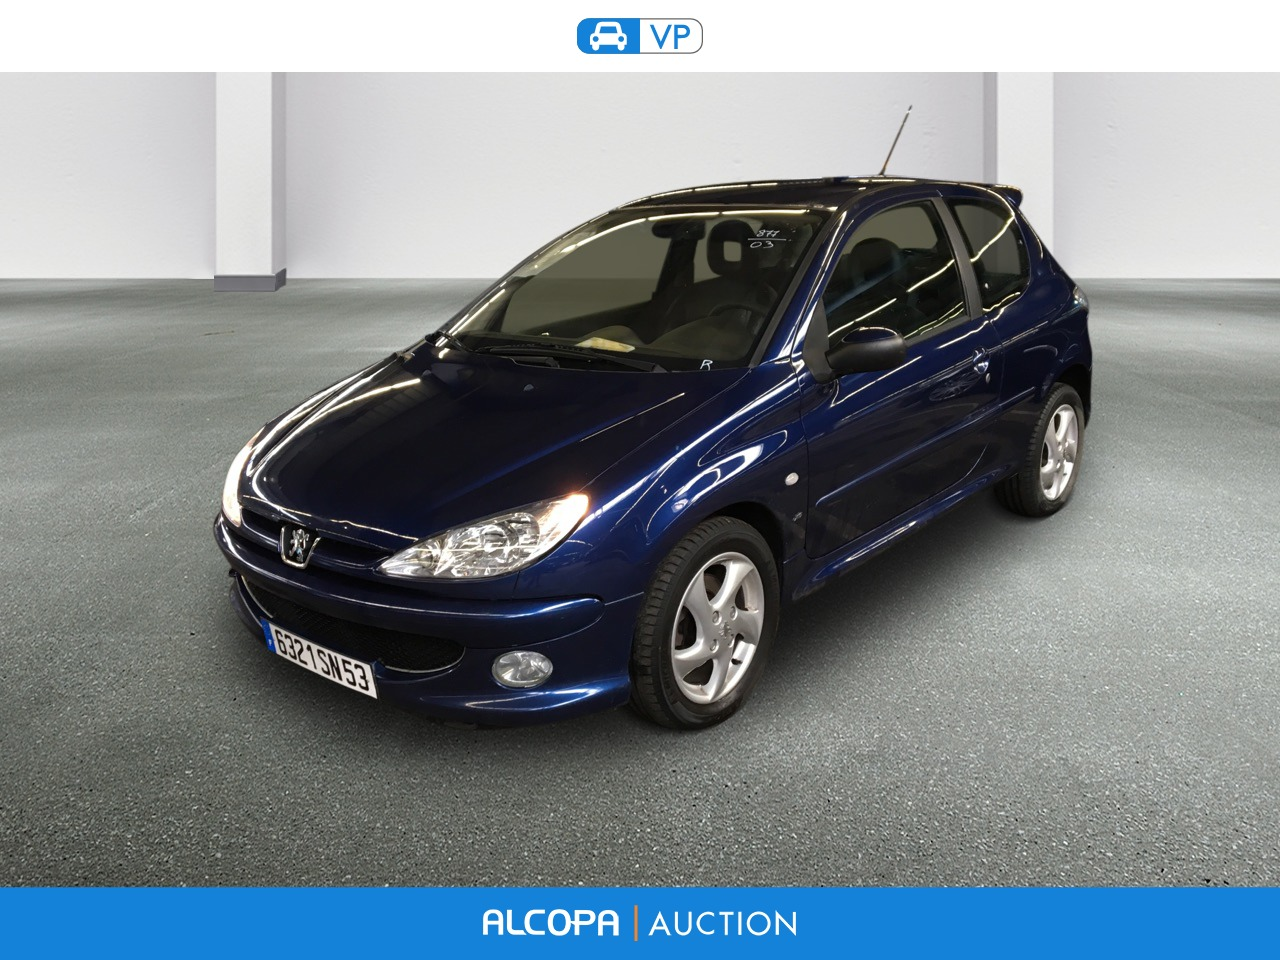 peugeot 206 206 2 0 hdi xs pack alcopa auction. Black Bedroom Furniture Sets. Home Design Ideas